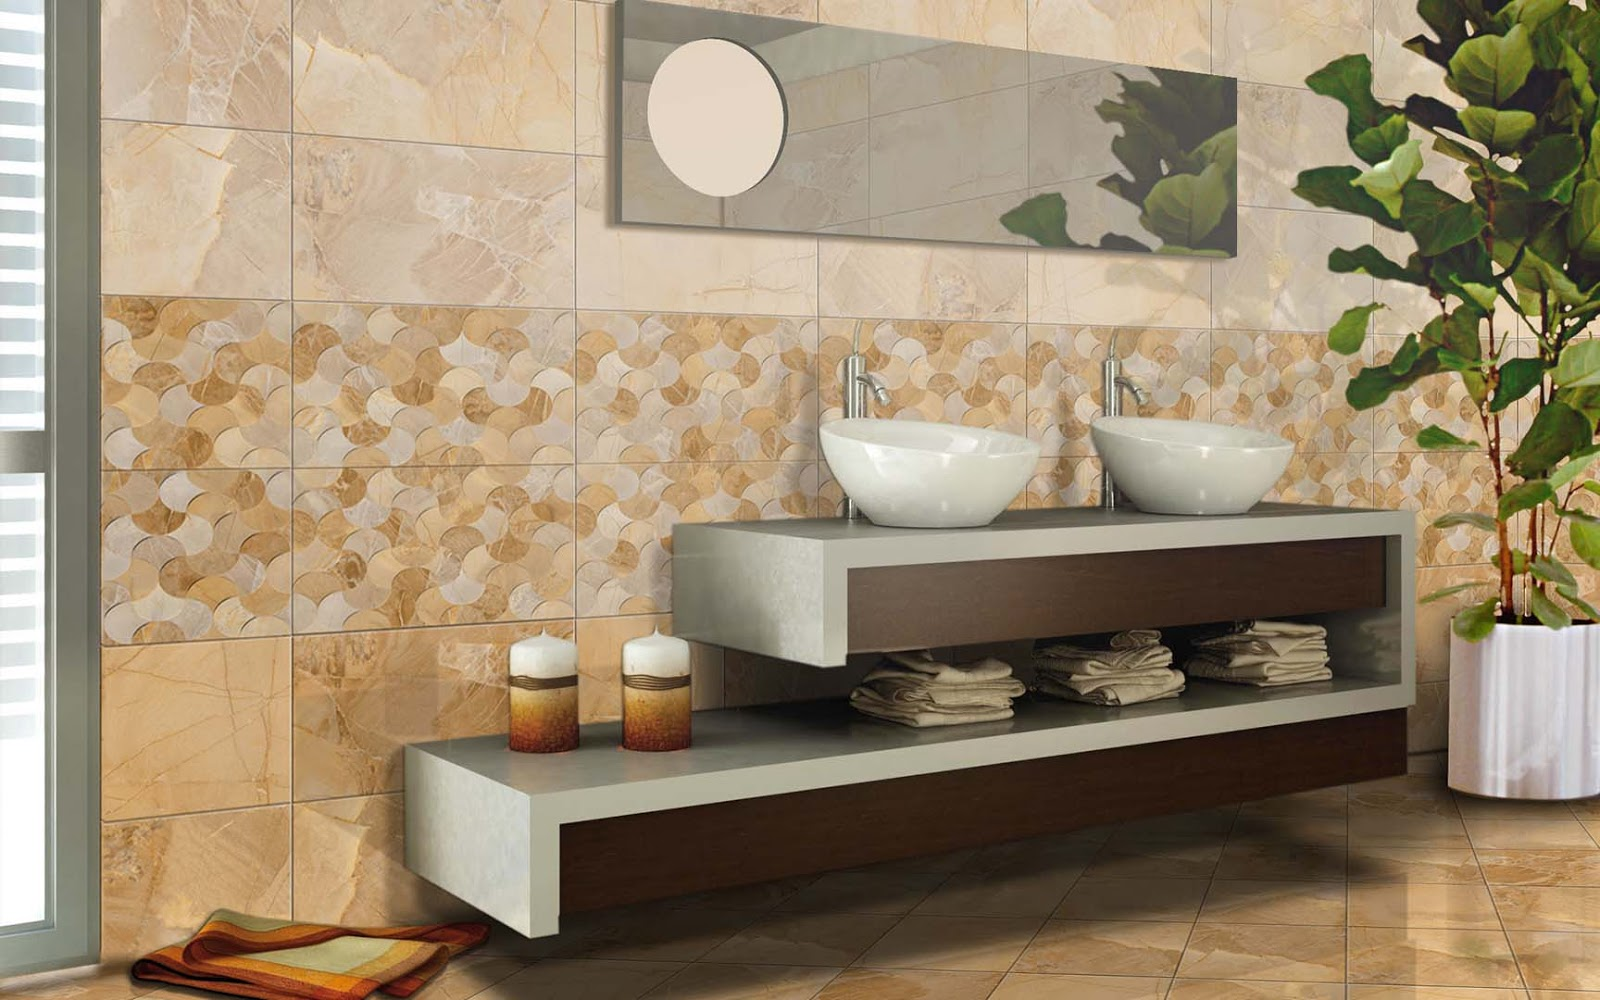 Keramik Bathroom Roman dLuxuria